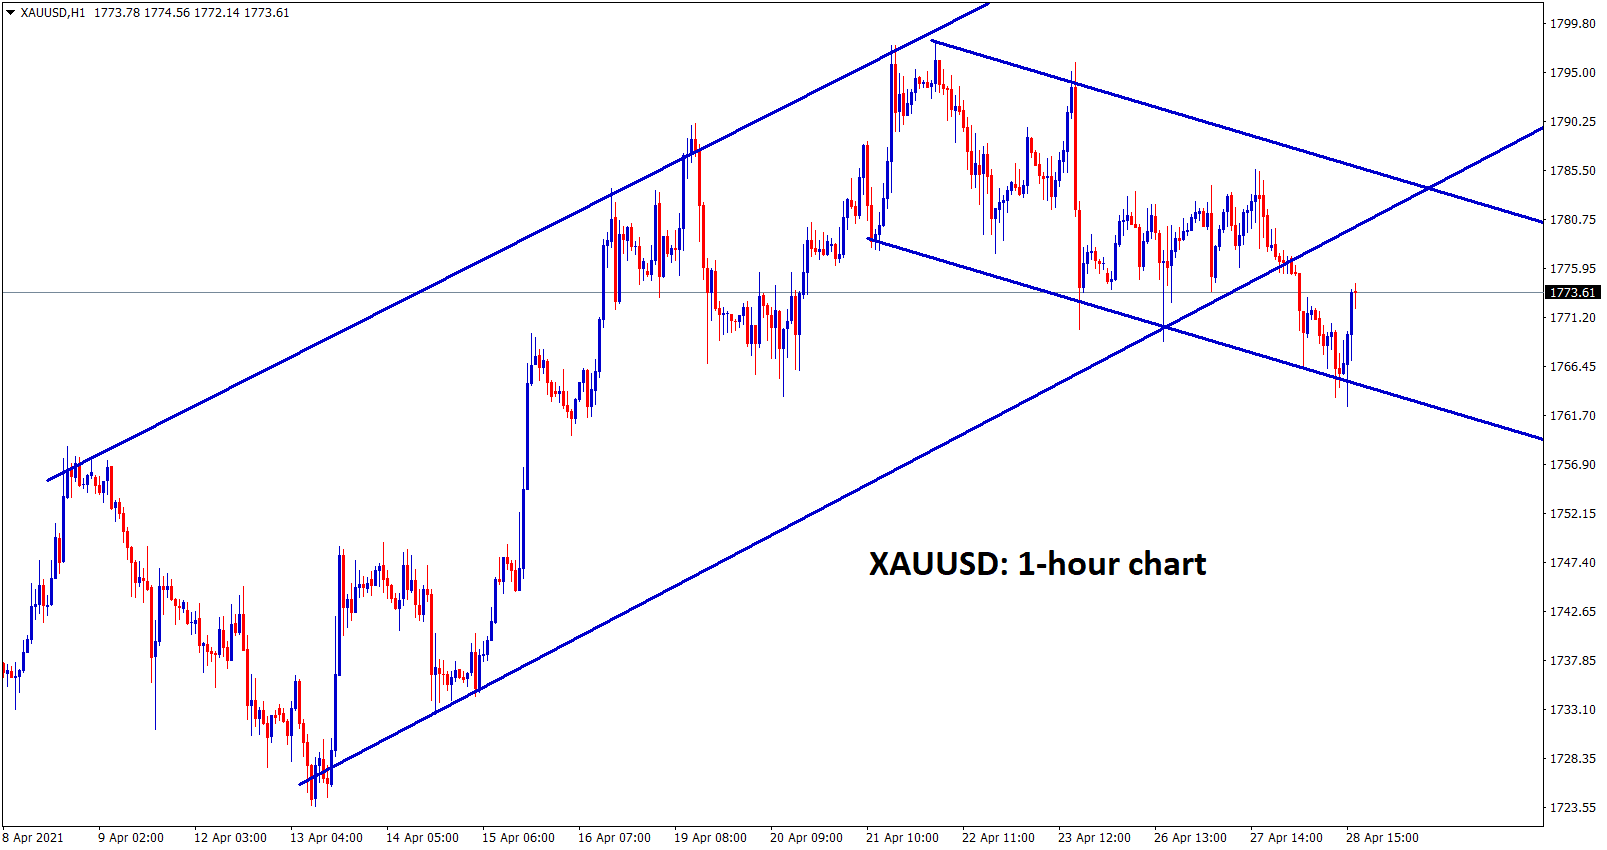 Gold is moving between the channel ranges. 1